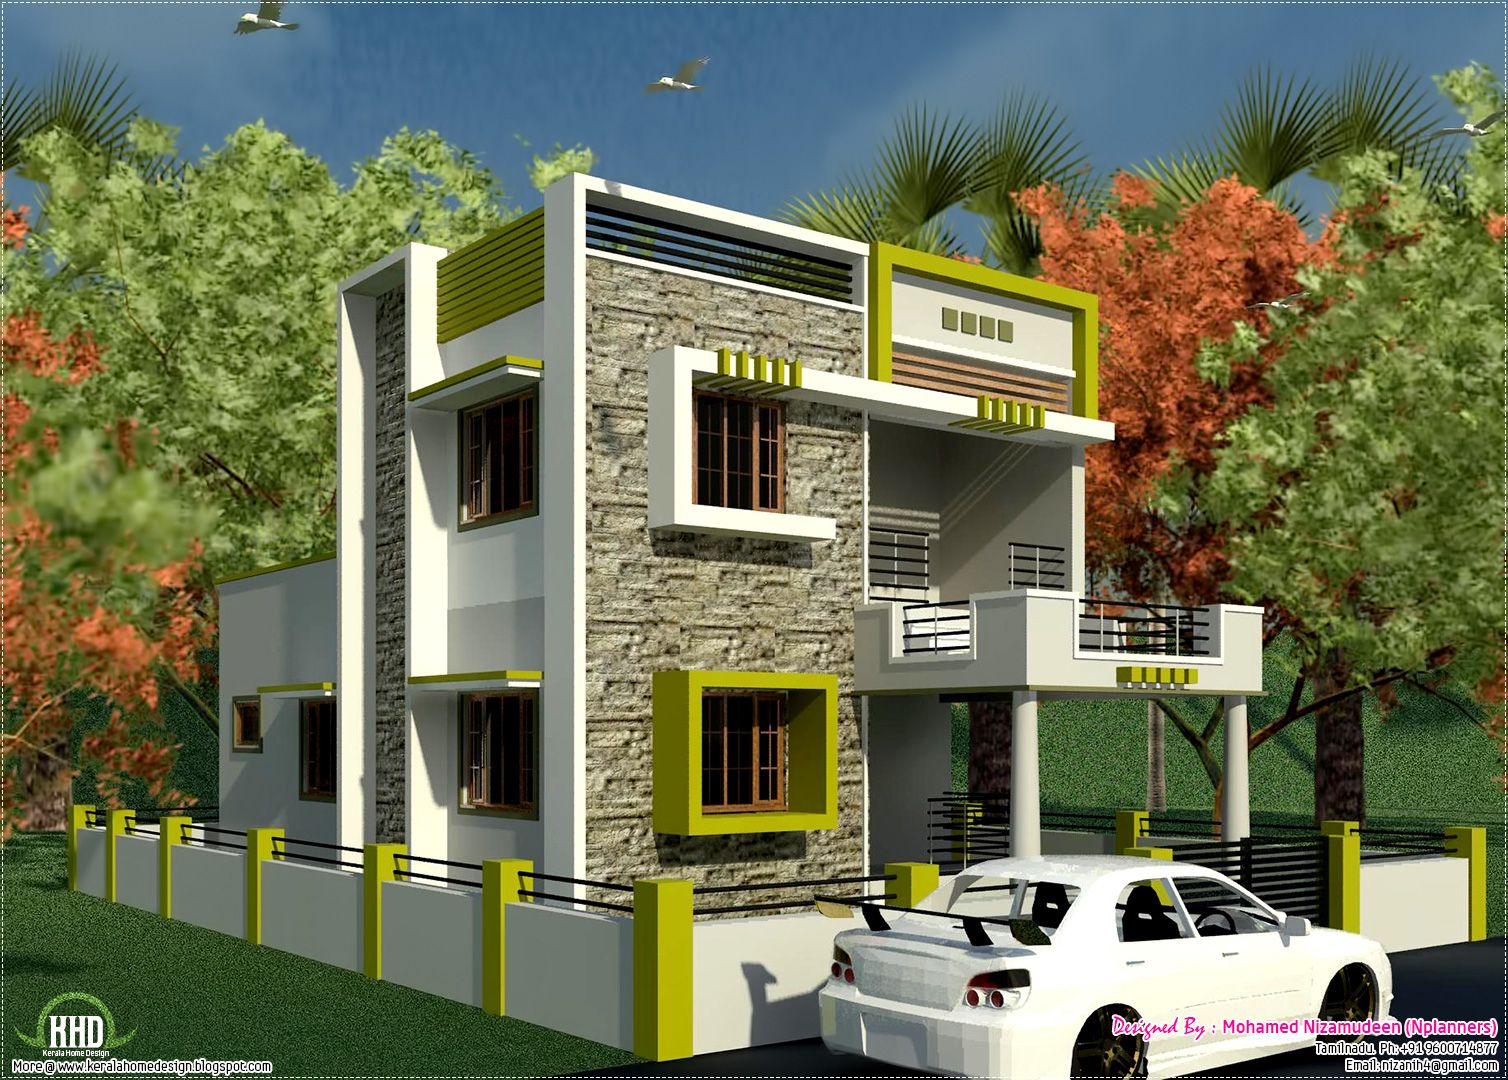 Small house with car park design tobfav com ideas for for Home design exterior india